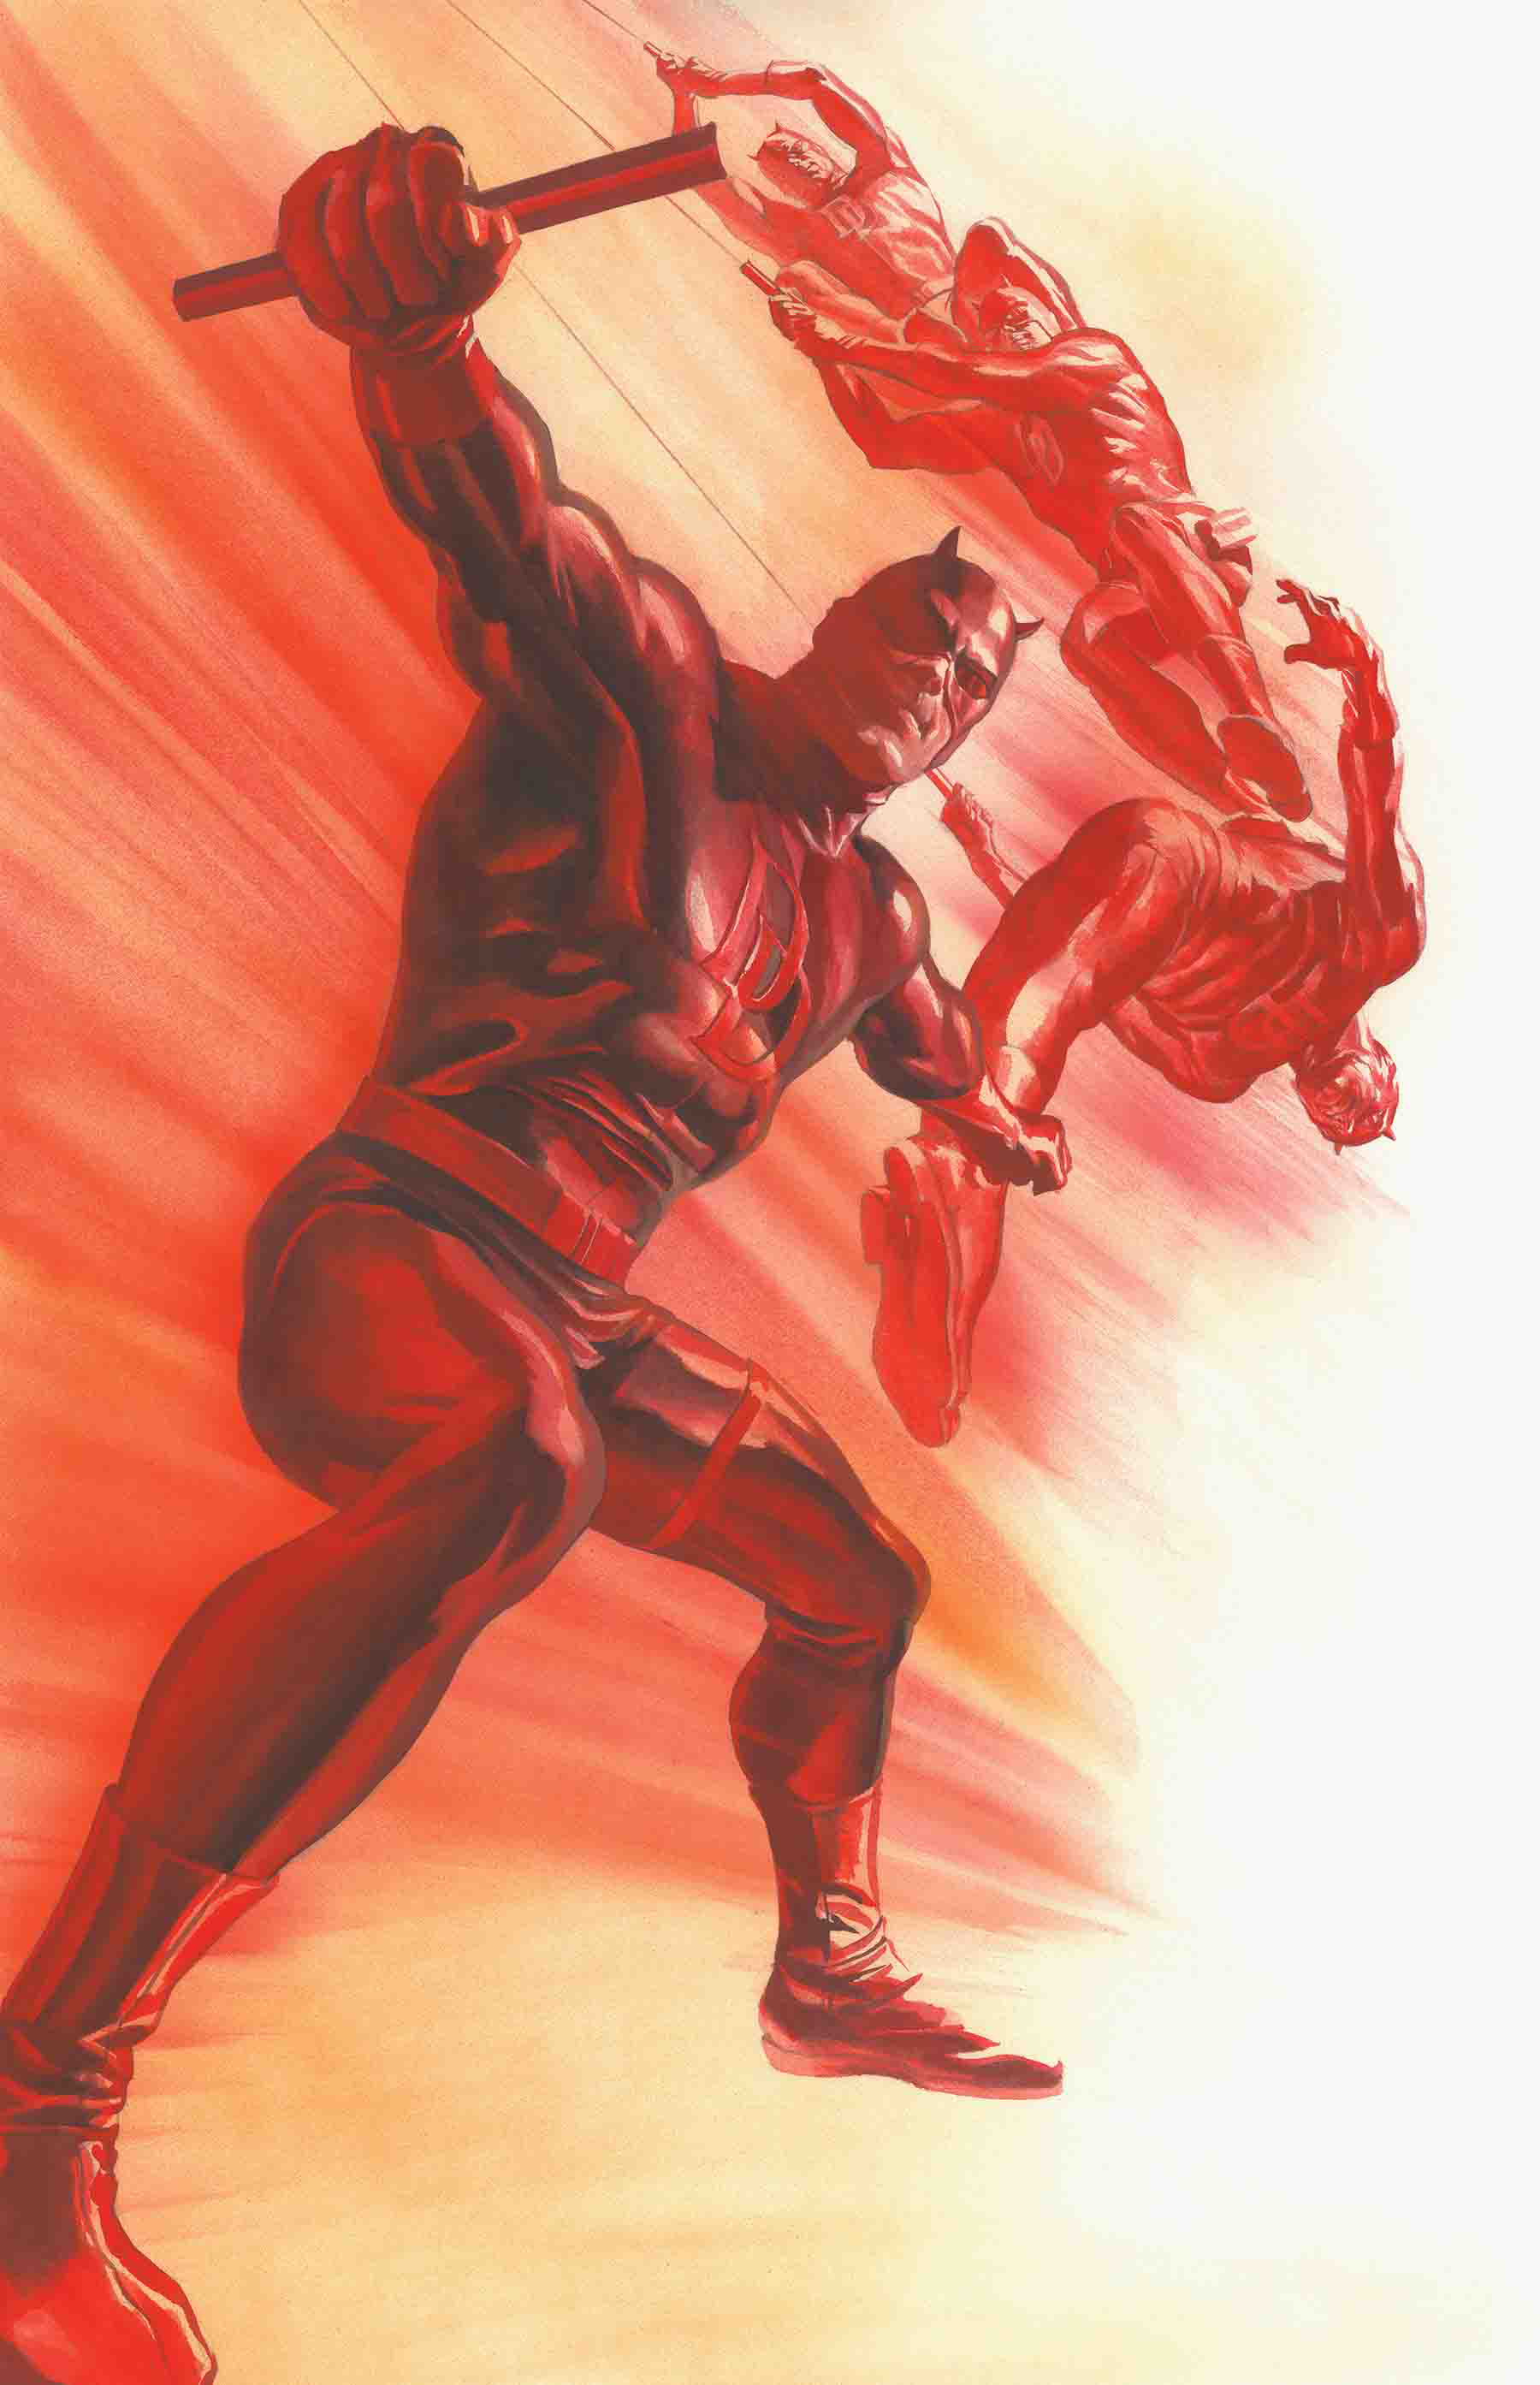 DAREDEVIL #600 BY ALEX ROSS POSTER